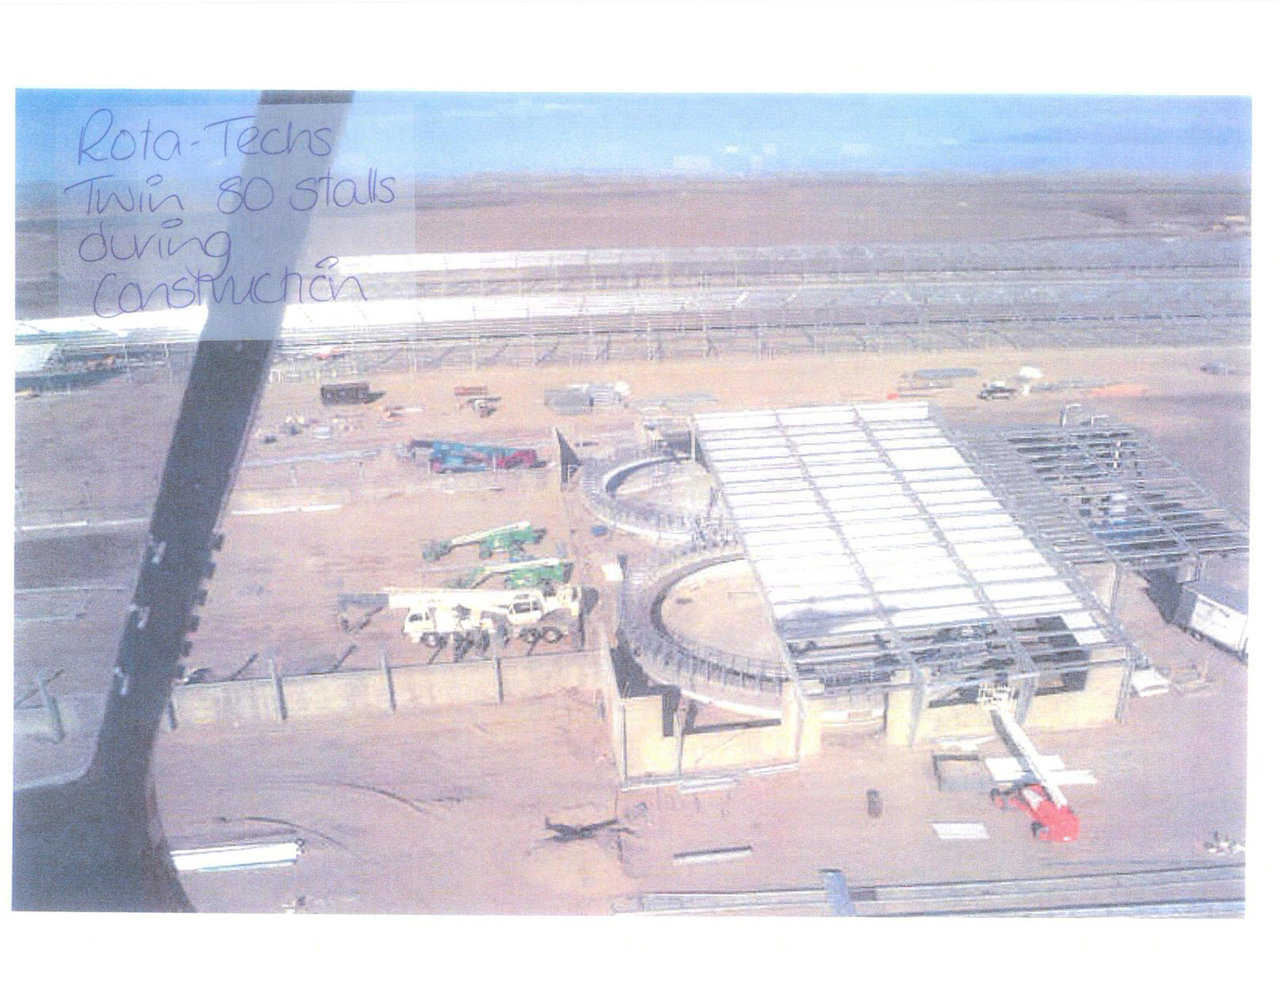 Aerial view underconstruction — It is impossible to efficiently cover a round structure with a square building.